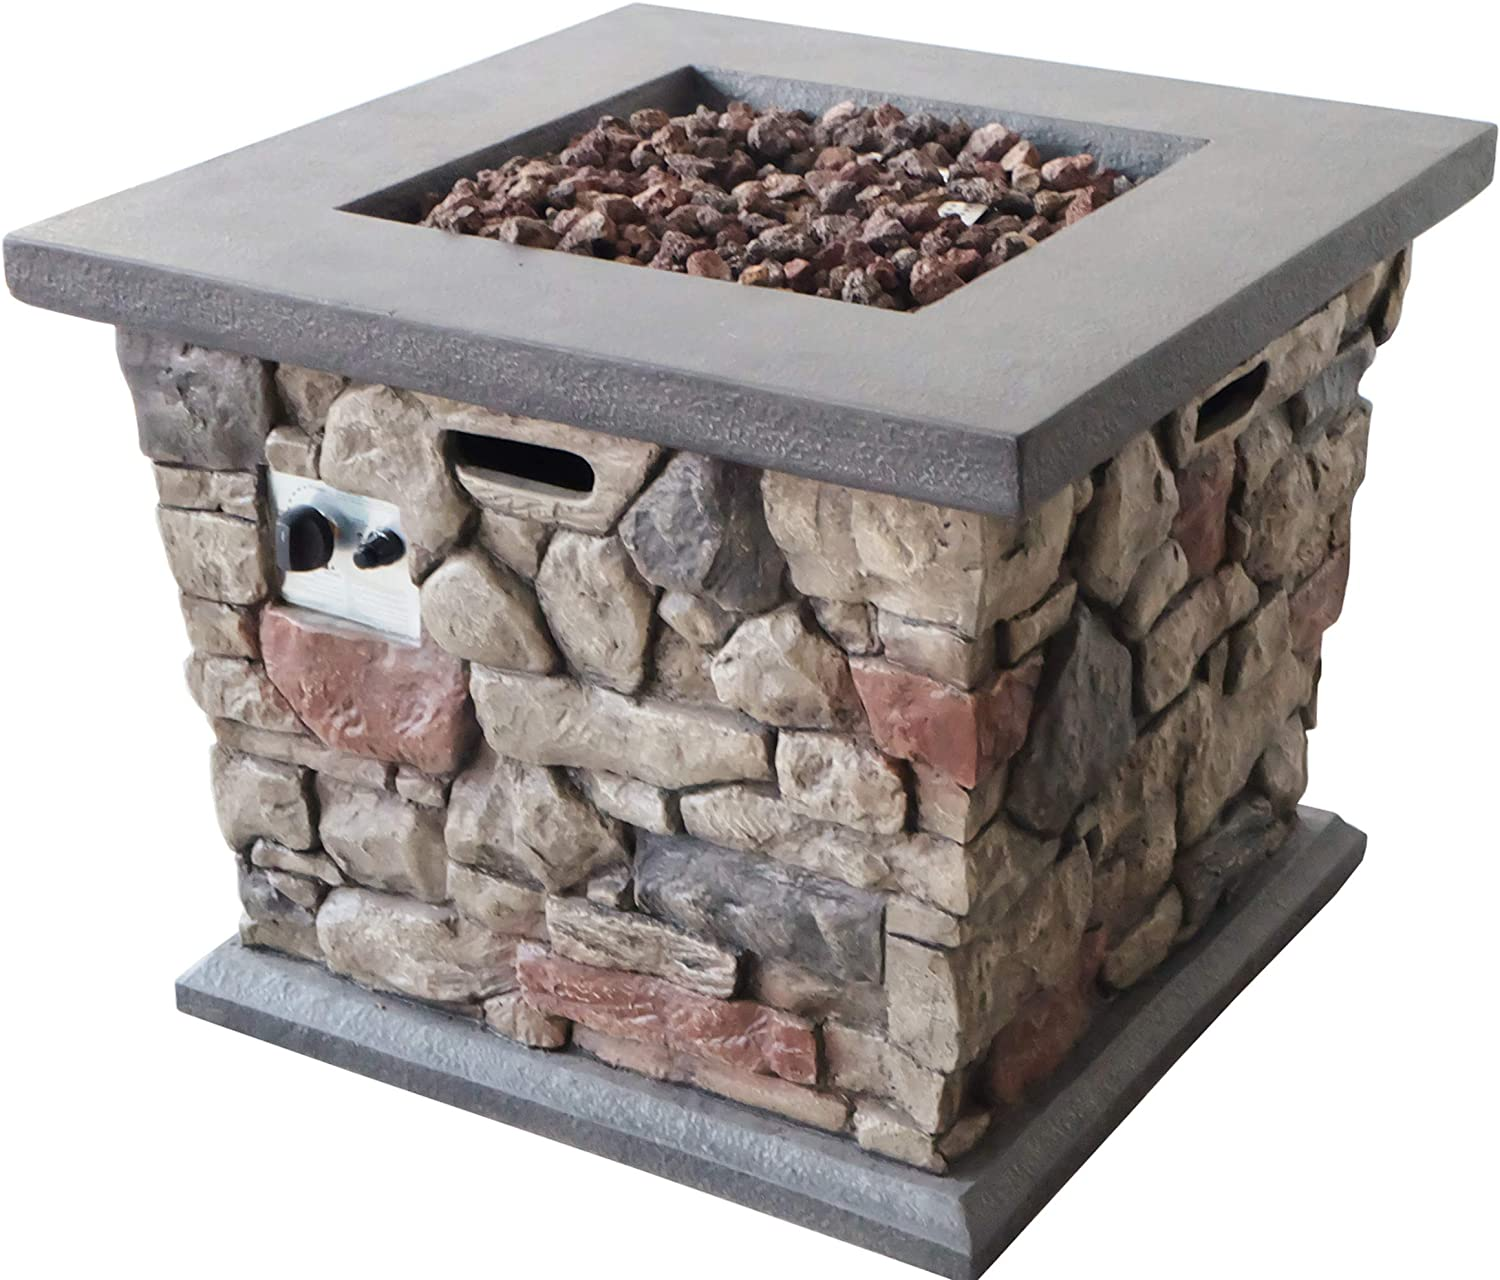 Christopher Knight Home Crawford Outdoor Stone Finished Square Fire Pit – 40,000 BTU